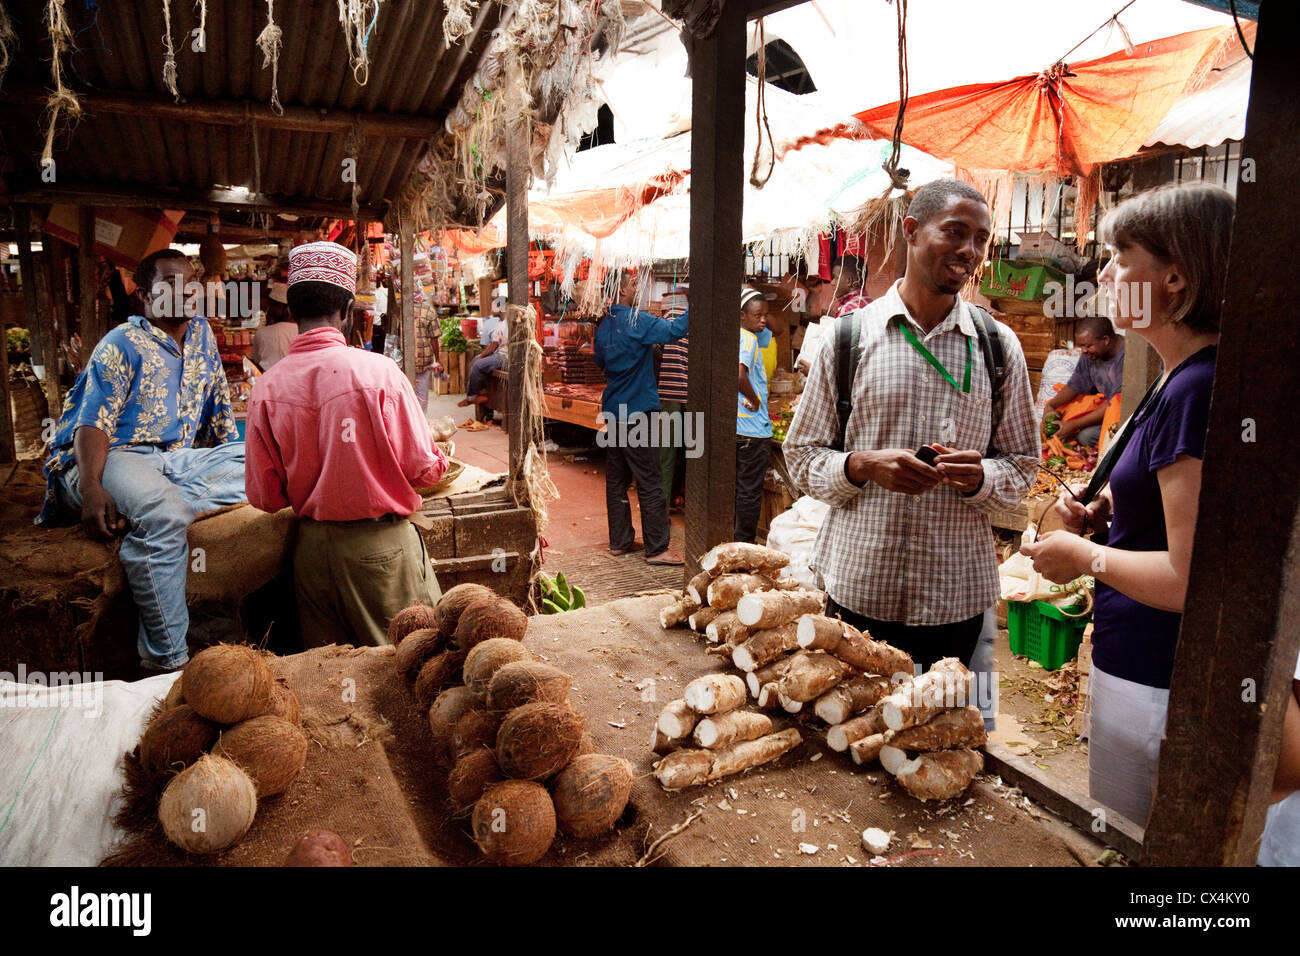 Tourists and local people shopping in the Darajani food market, Stone town, zanzibar africa - Stock Image